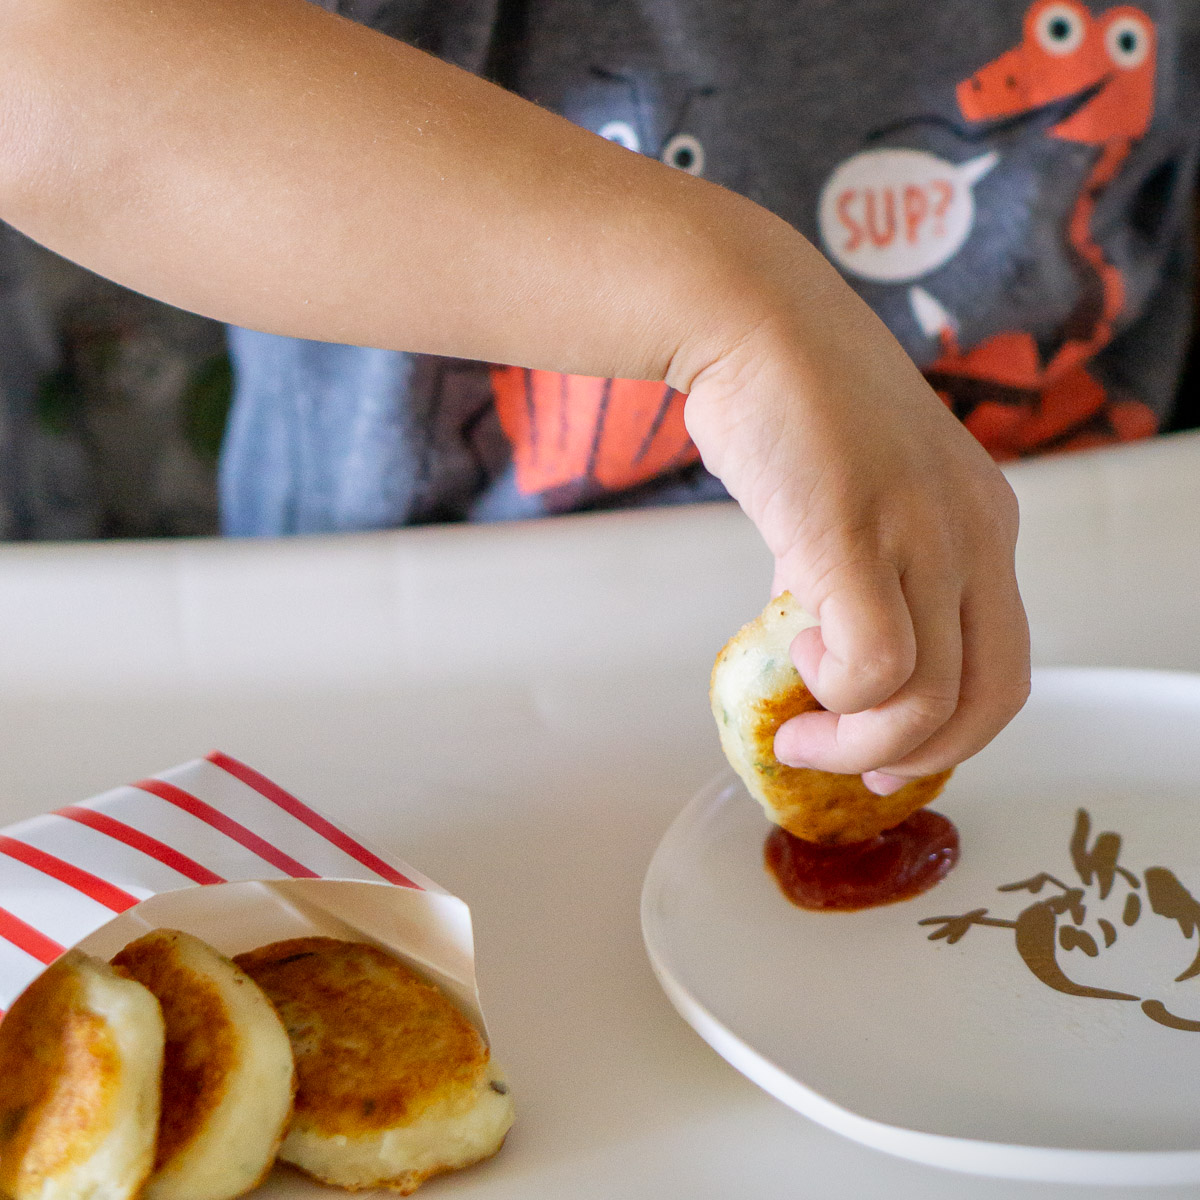 toddler dipping potato nugget in ketchup